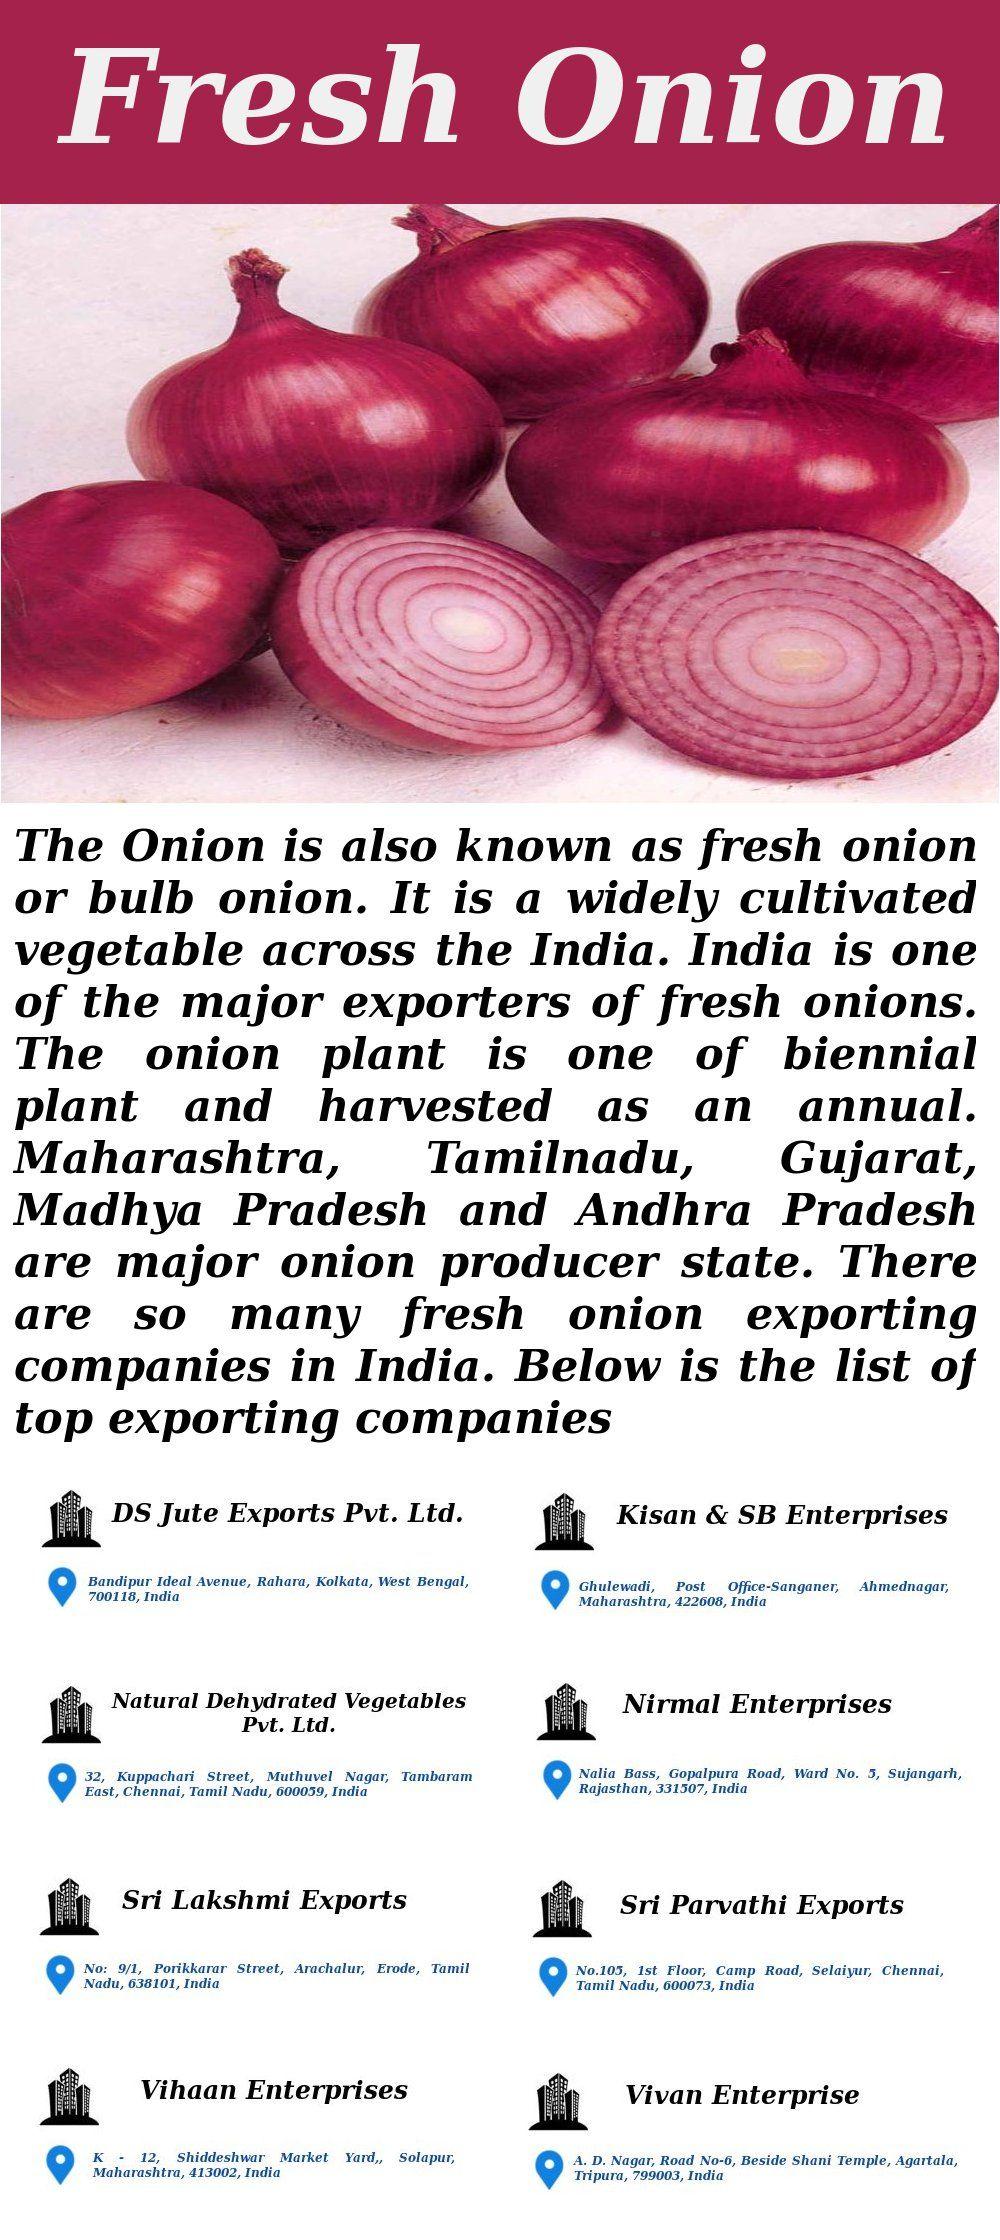 Fresh Onion Exporting Companies in India  #freshOnion